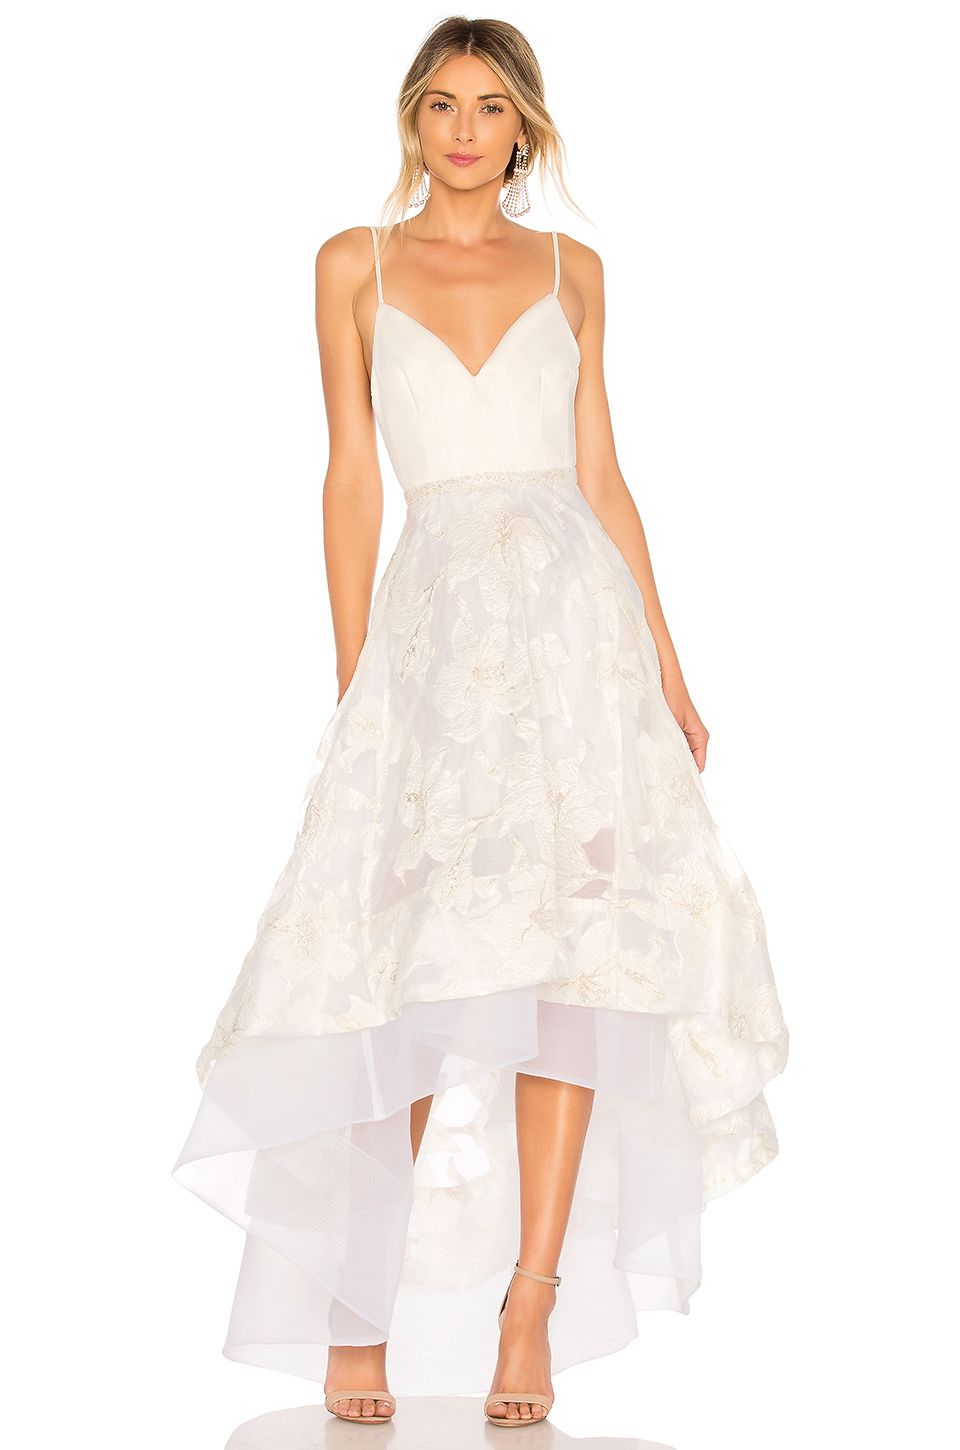 White gold wedding dress  Bronx and Banco Alexia Gown in White u Gold  I Might  Pinterest